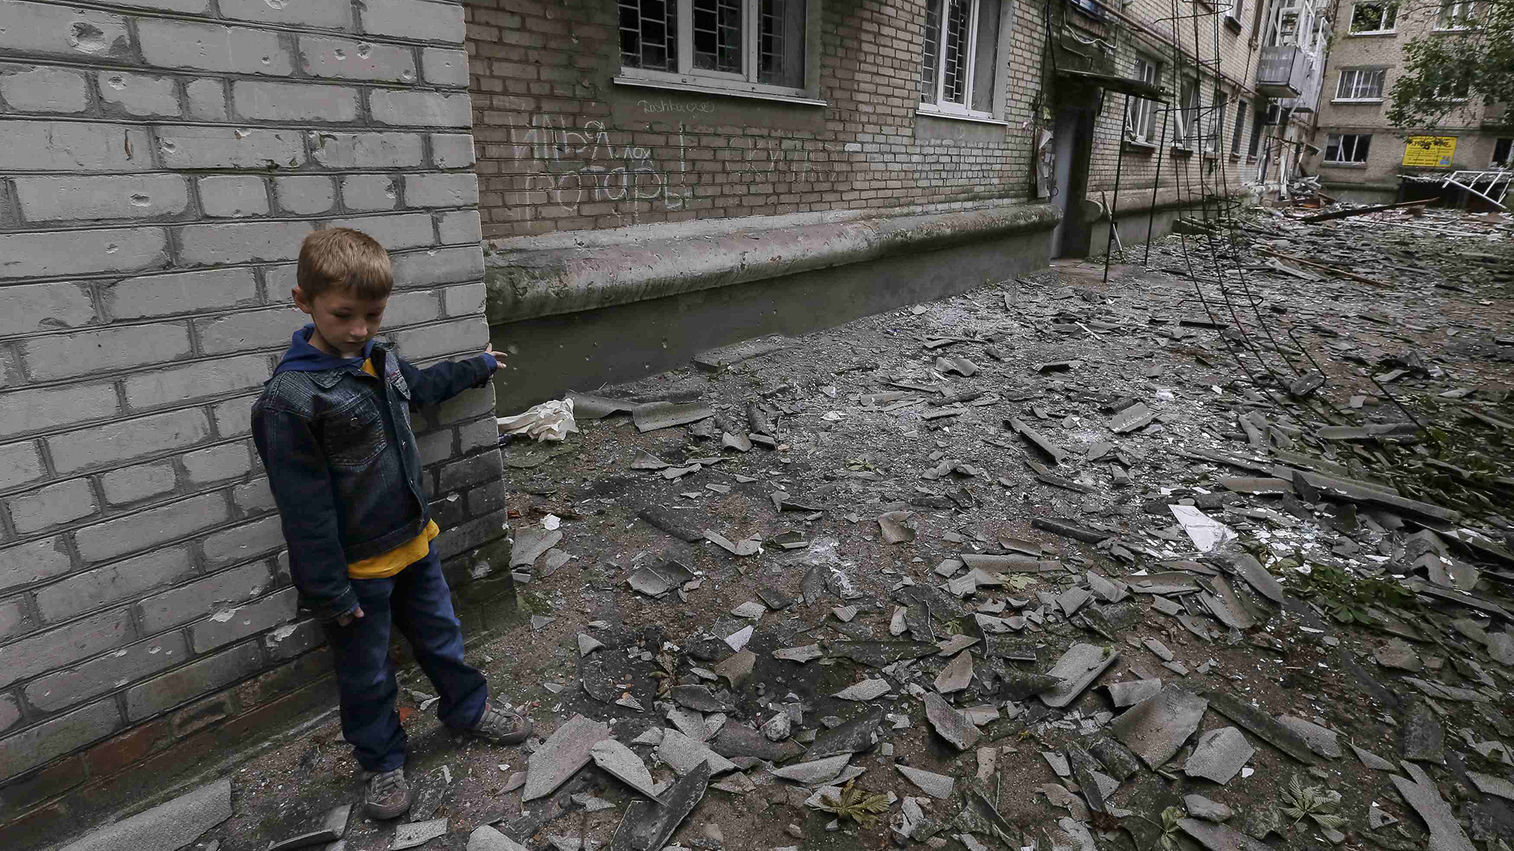 The number of civilian casualties increased by 280% - the UN sums up the war in the Donbass